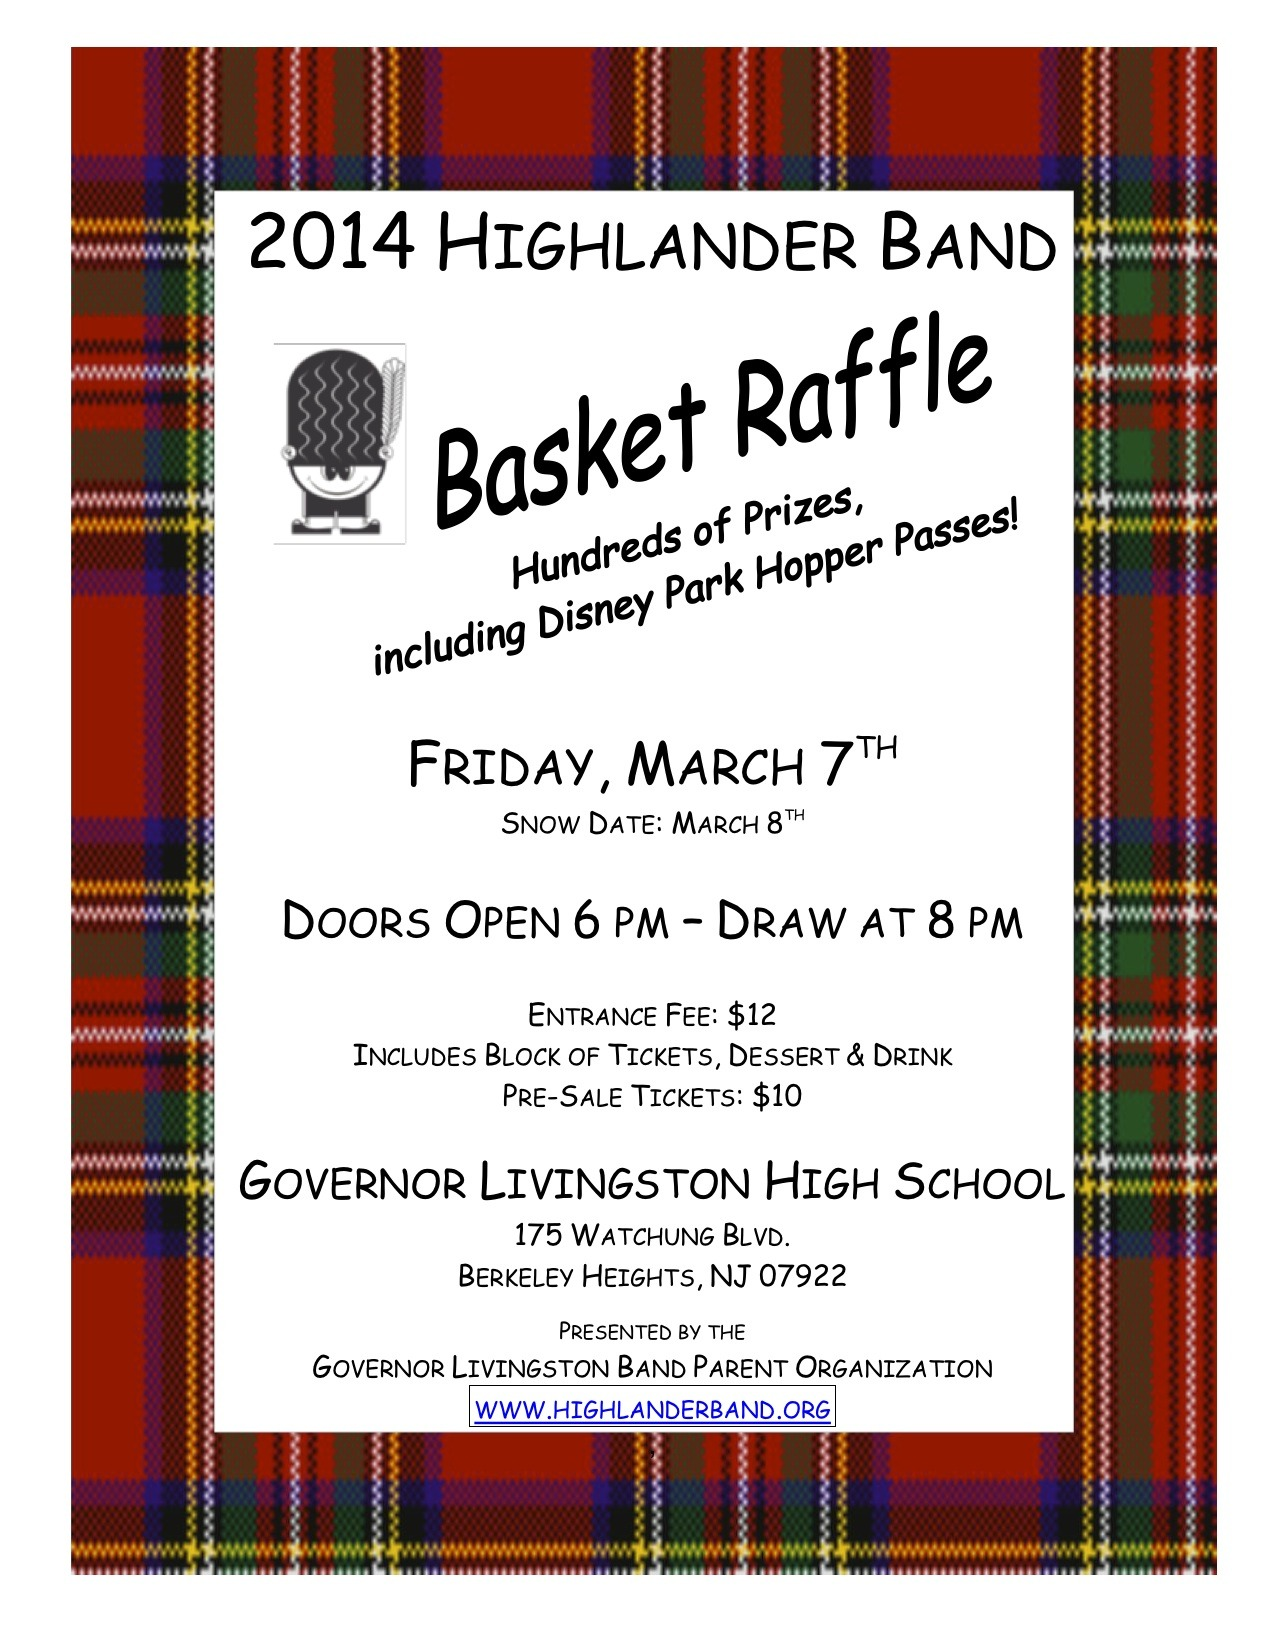 a91cab5d86ba86ed387d_2014_Basket_Raffle_flyer_with_tartan_border.jpg